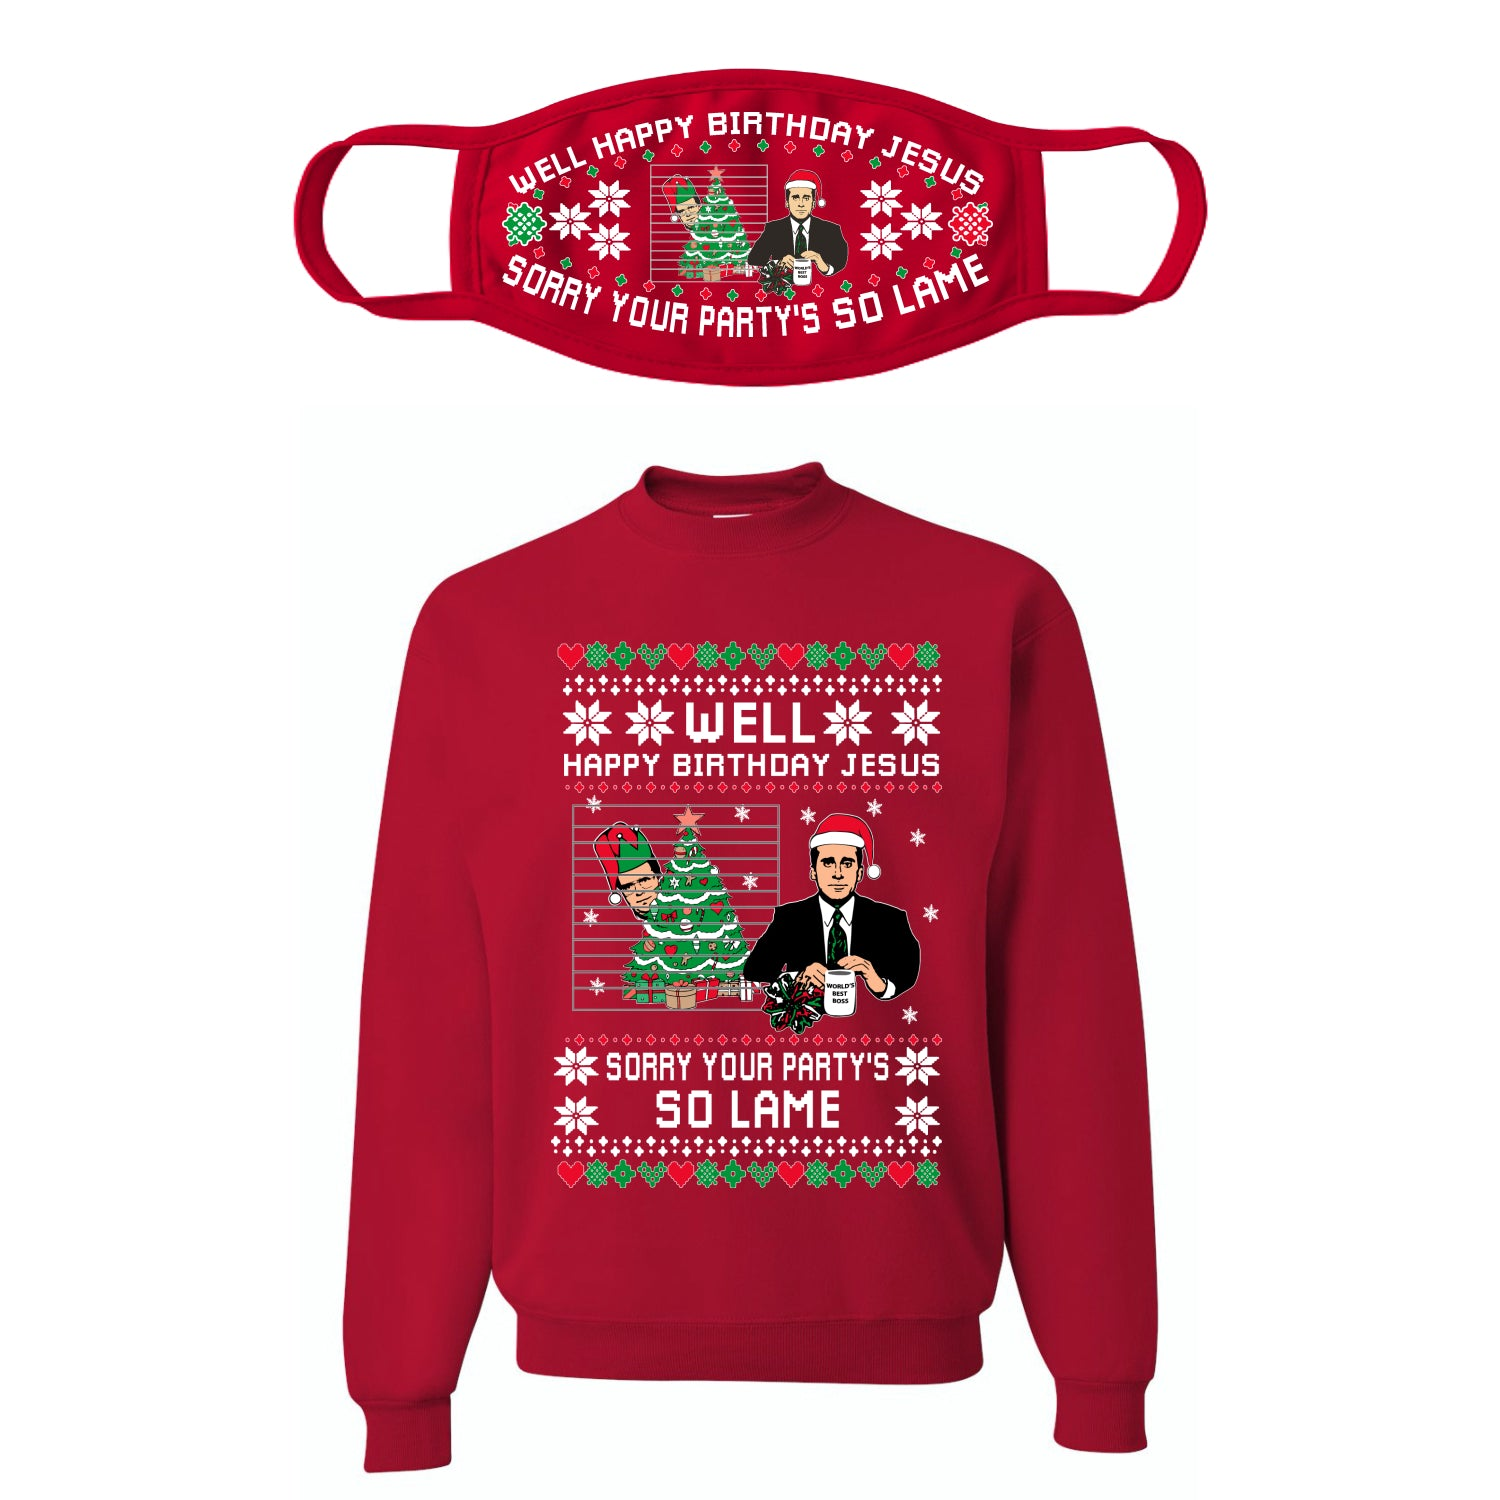 Well Happy Birthday Jesus Funny Quote Office Ugly Christmas Sweater Christmas Unisex Crewneck Sweatshirt-Mask Combo